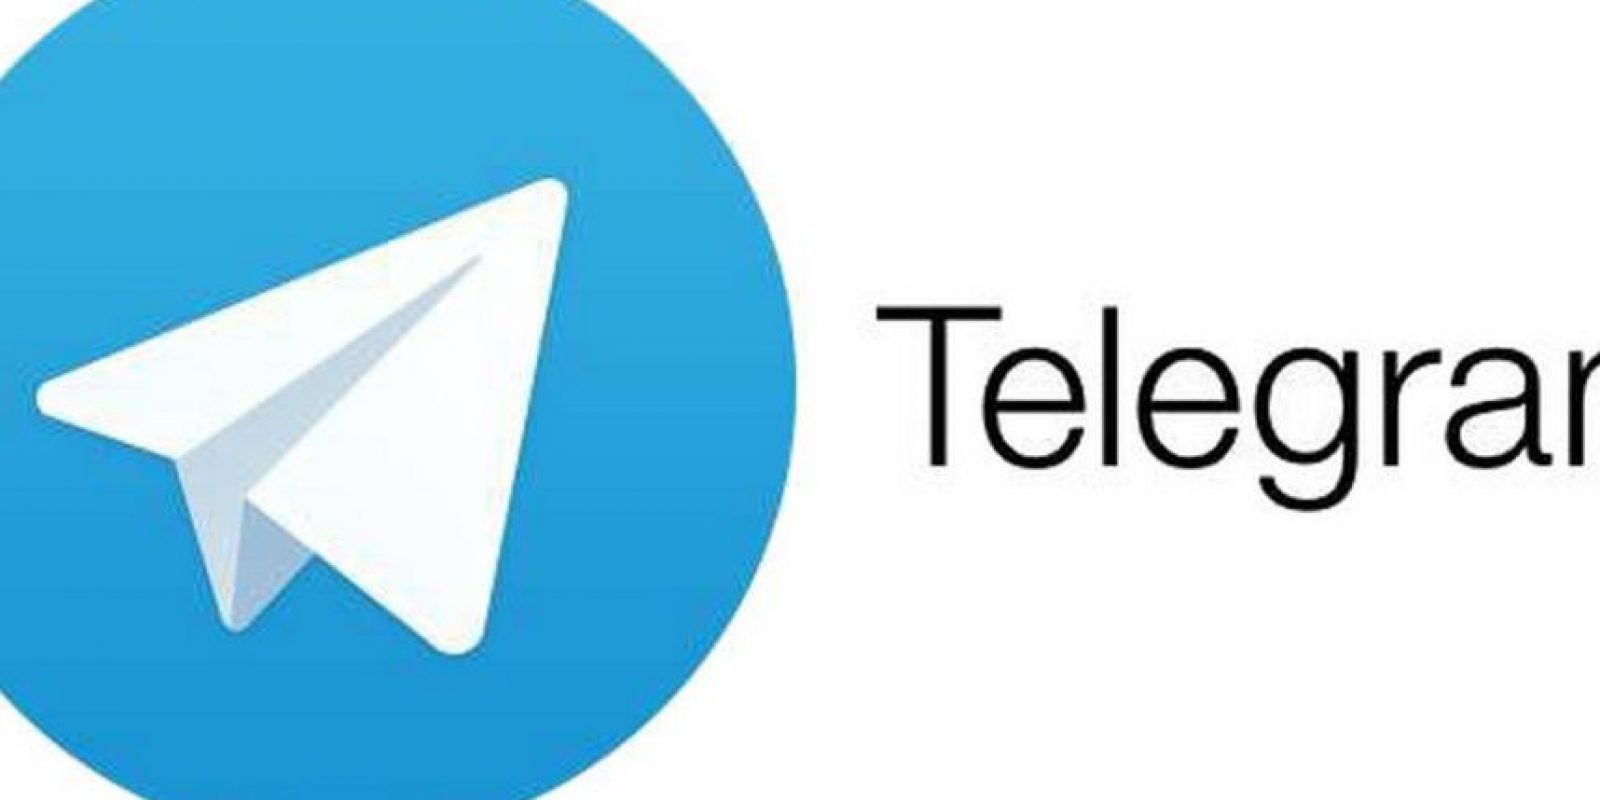 6) Telegram – Disponible para iOS, Android y PC. Foto: Tumblr